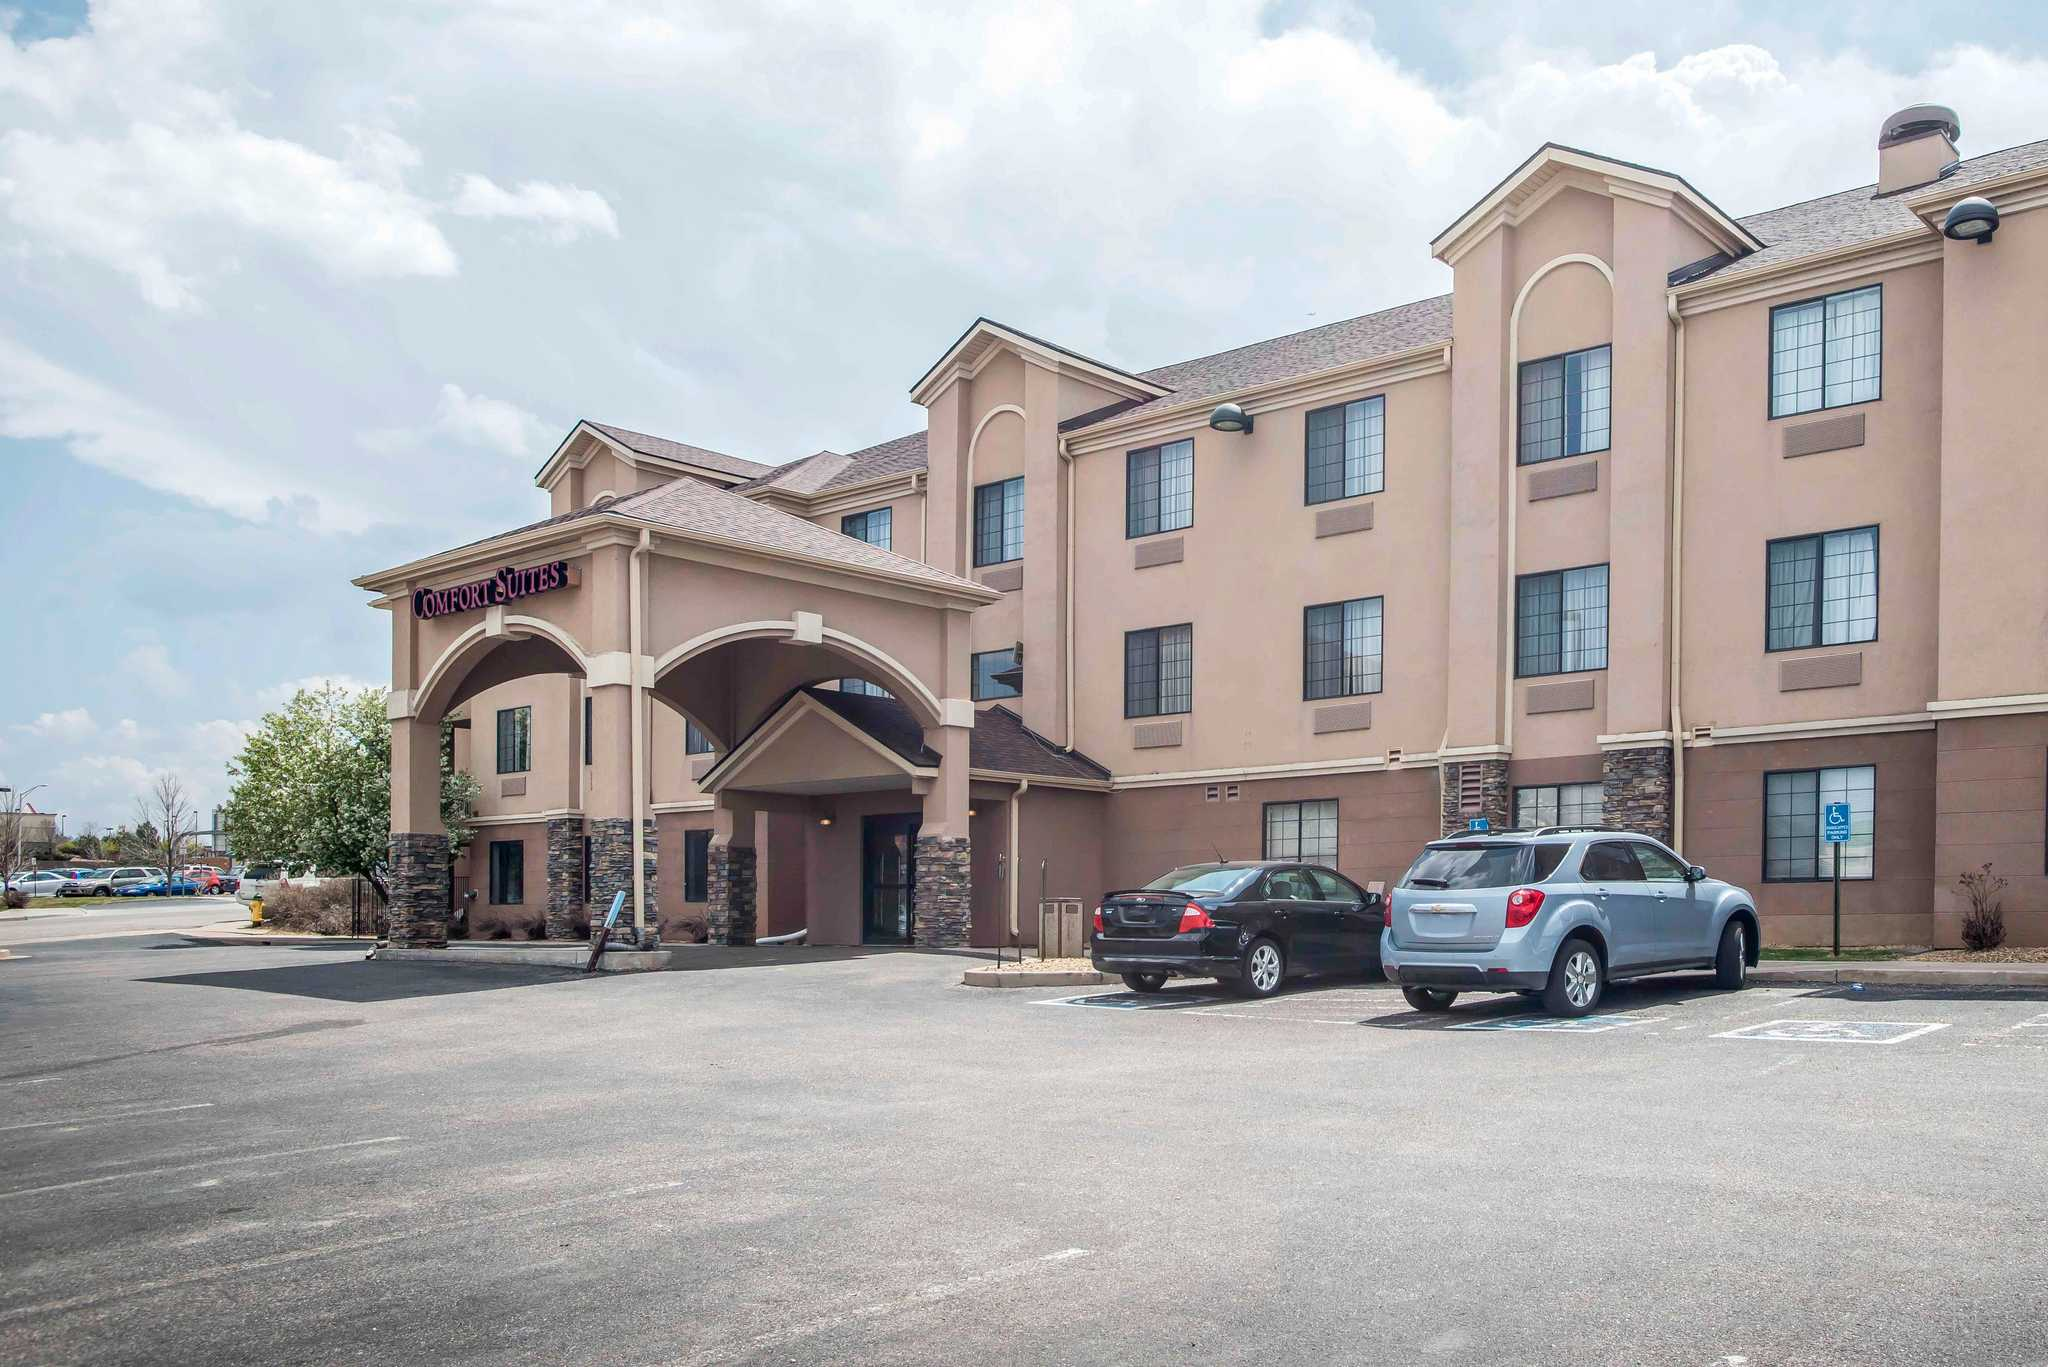 Hotels And Motels In Castle Rock Colorado